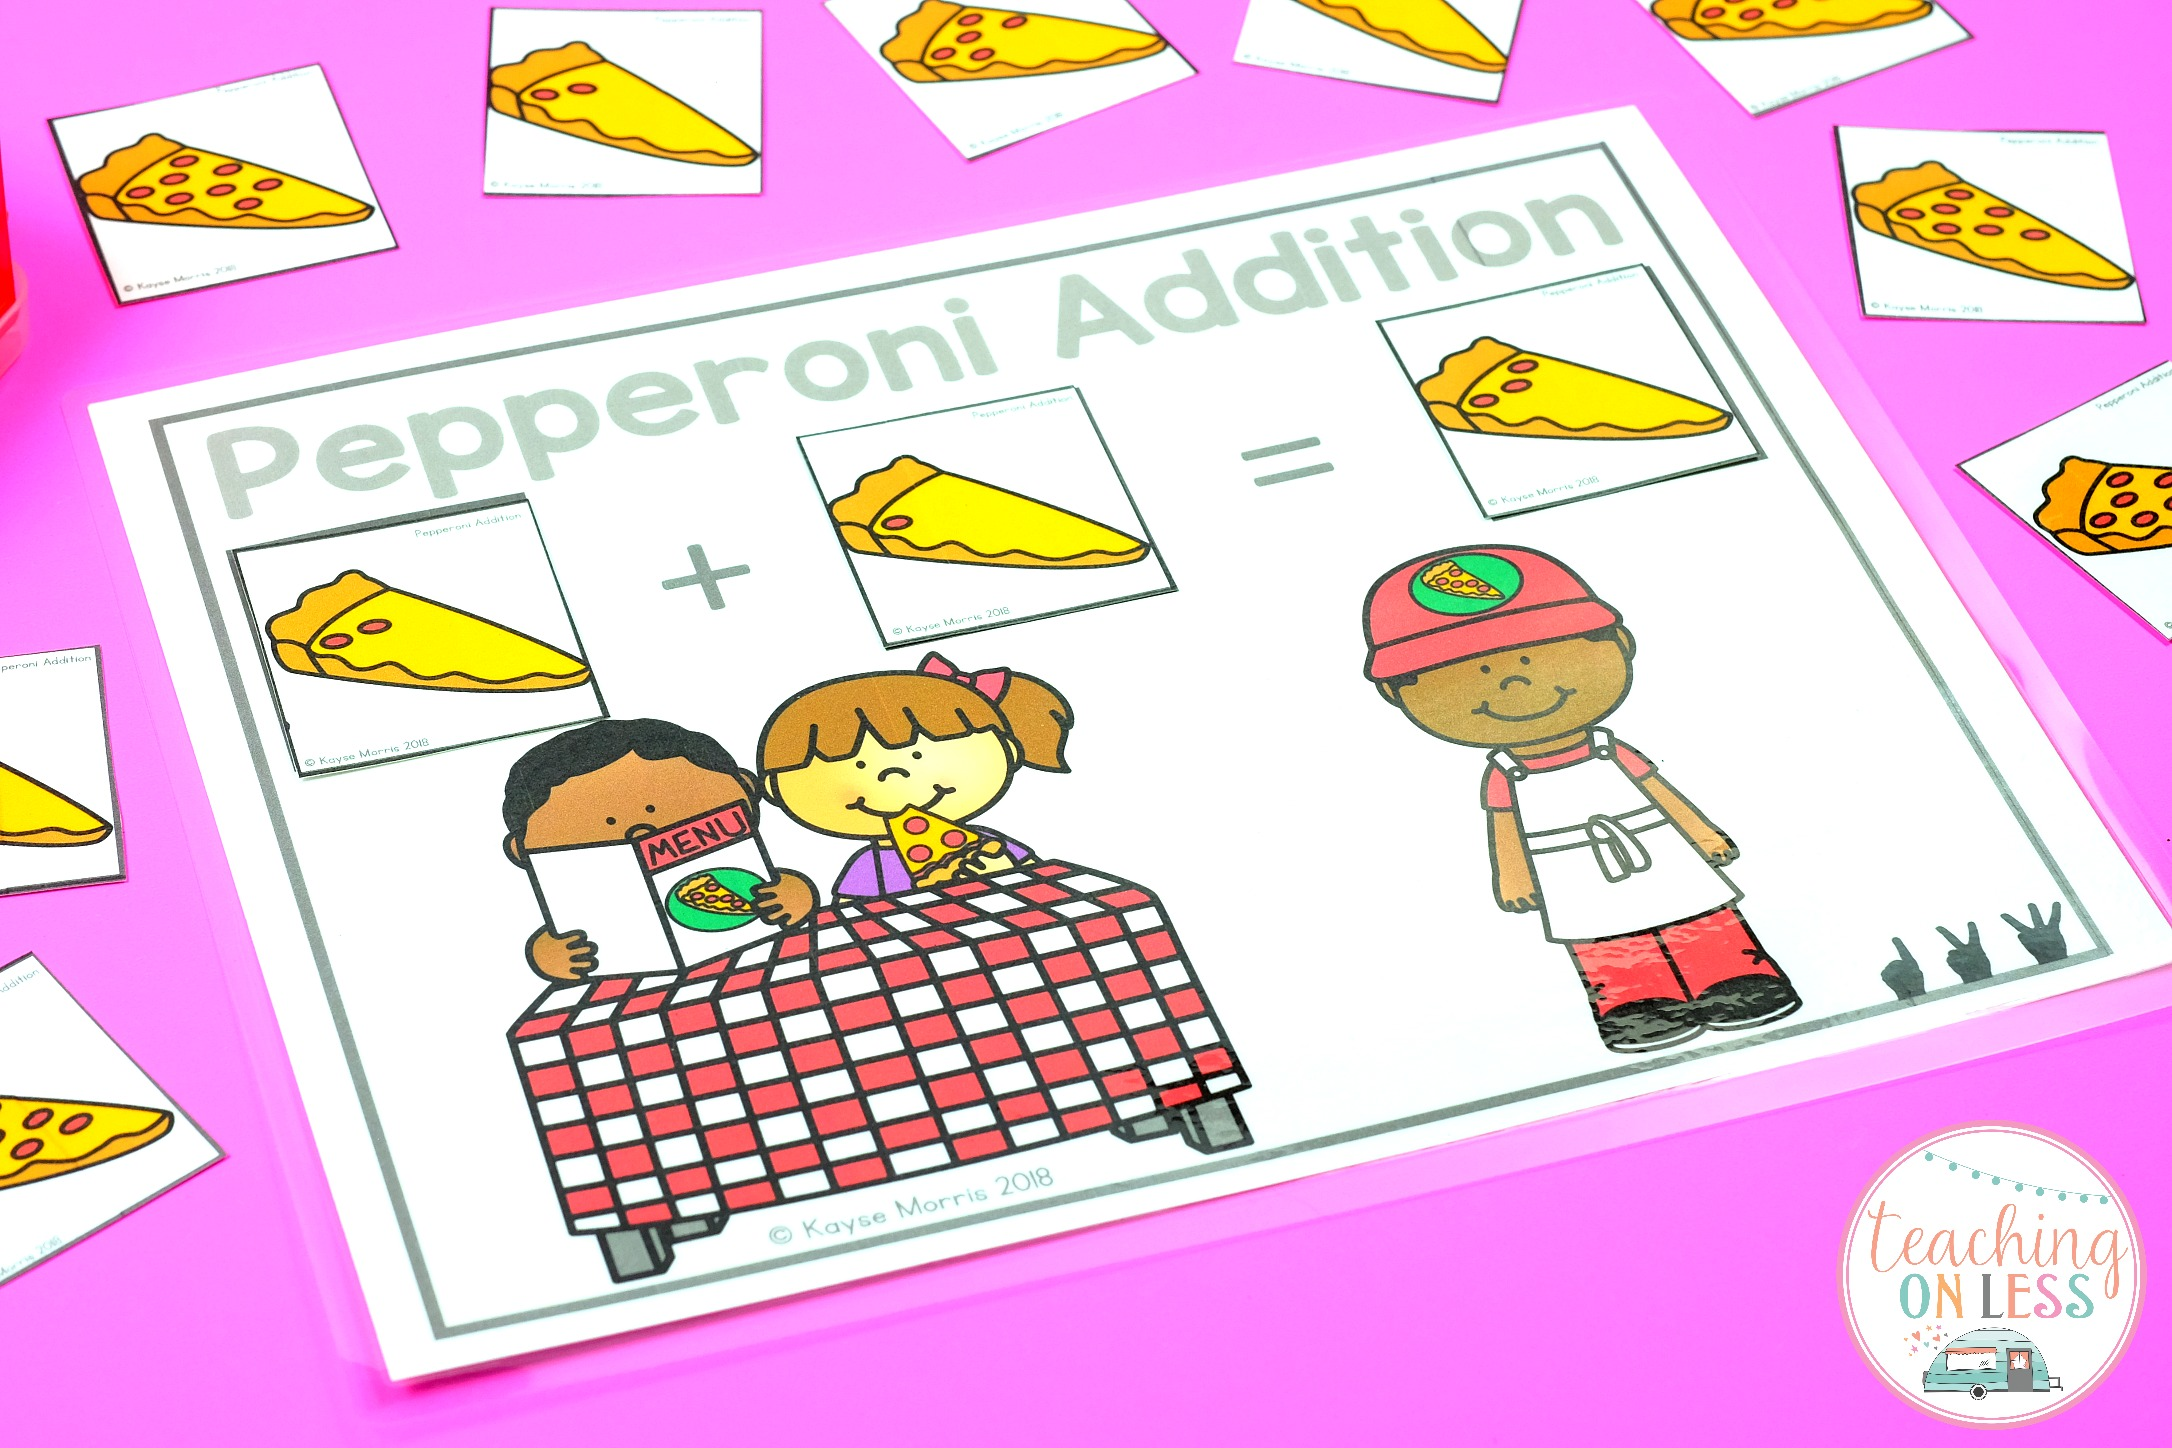 Kindergarten Math Worksheets Made Easy Kayse Morris